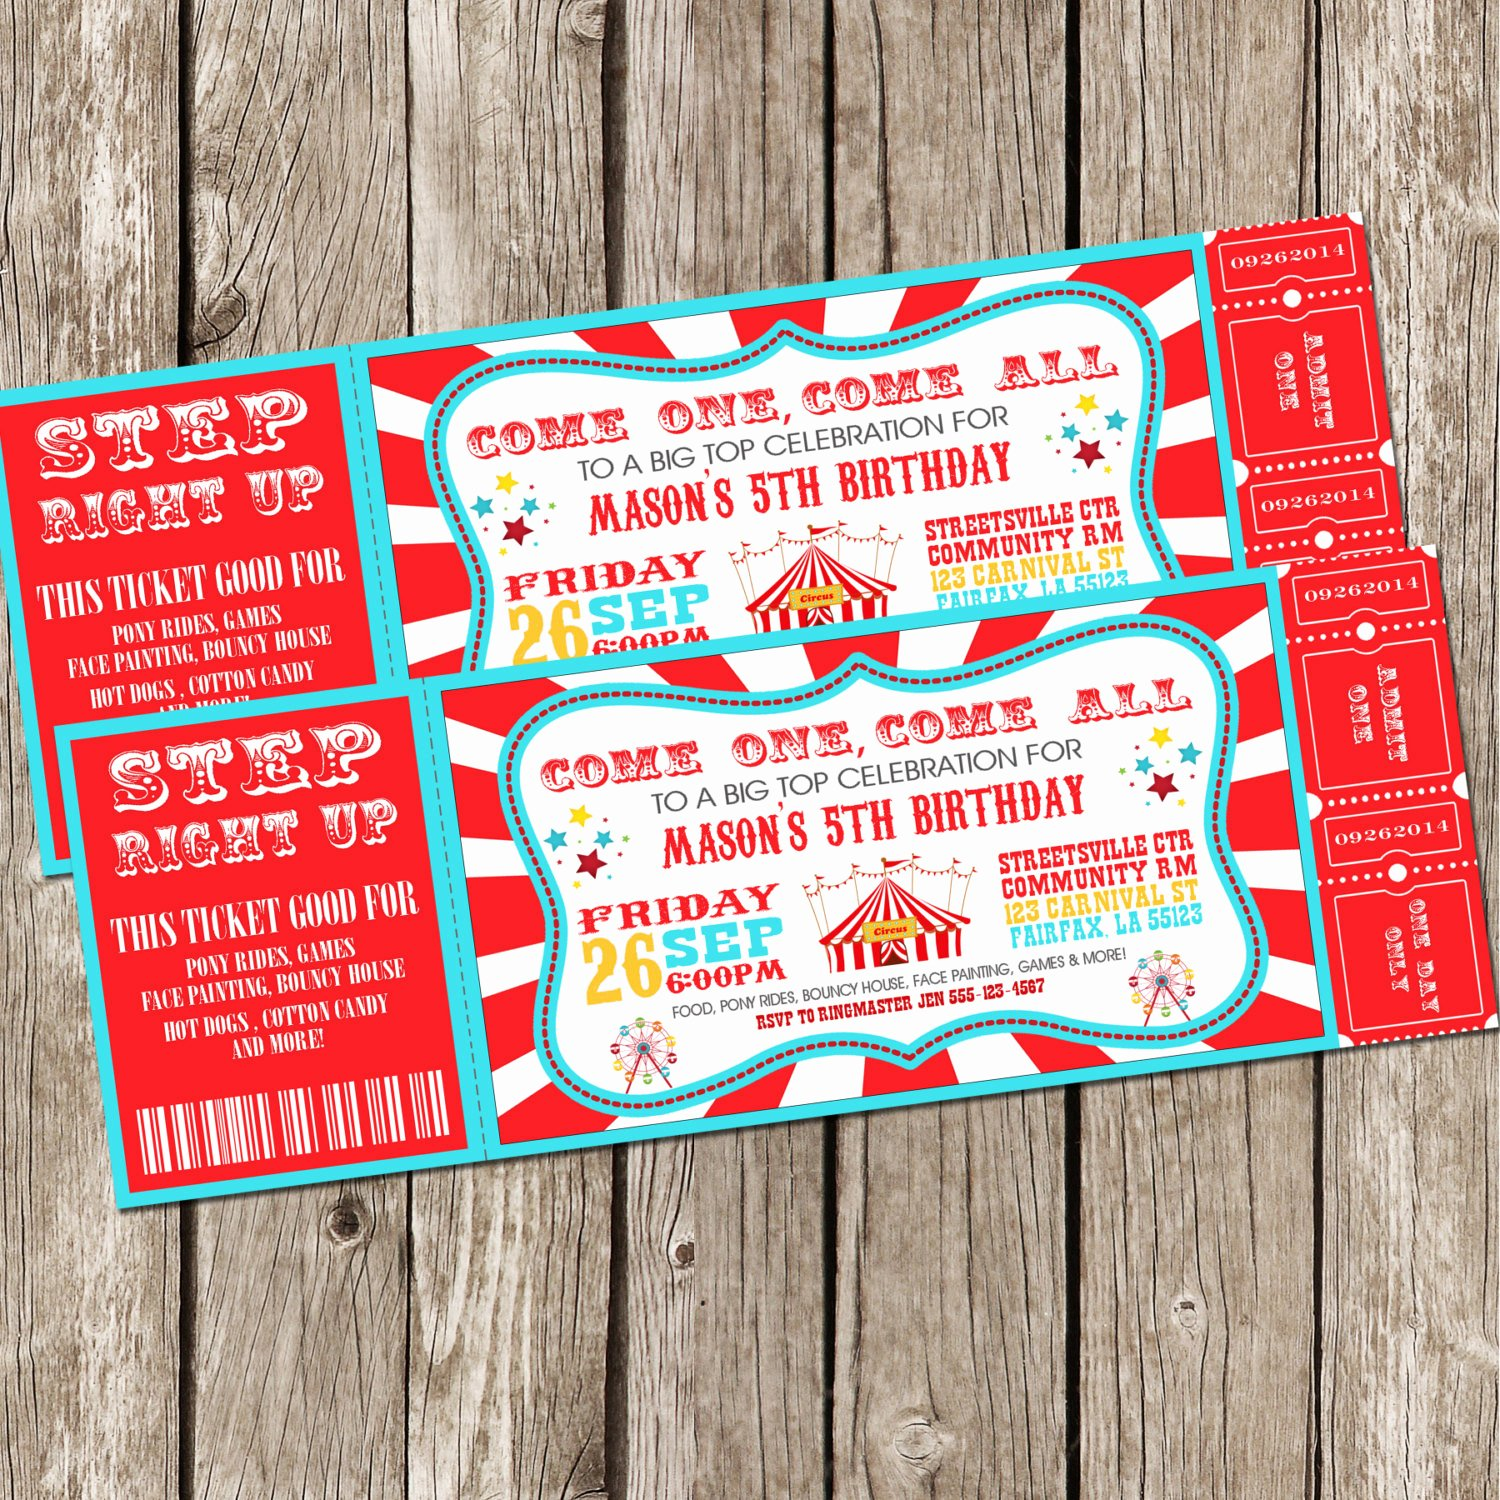 Carnival themed Birthday Invitations Unique Vintage Circus Carnival Invitation Ticket Invitation